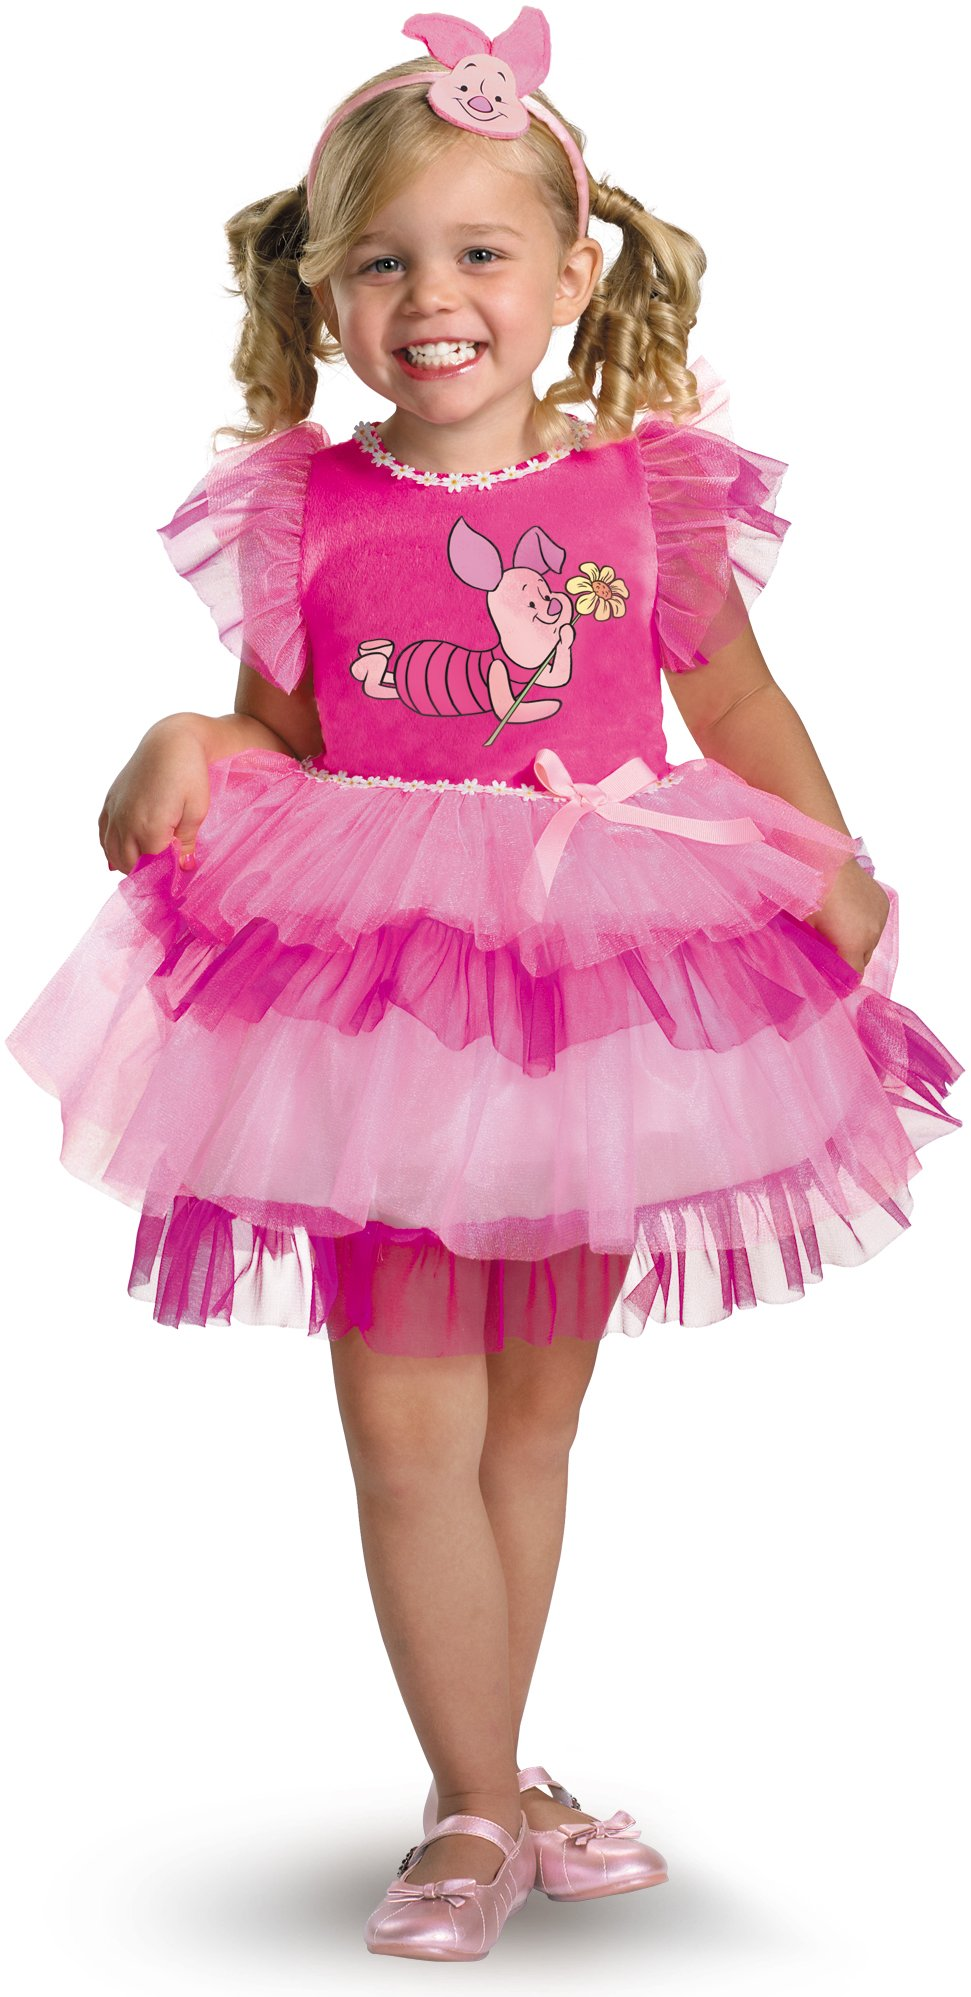 Winnie the Pooh - Frilly Piglet Toddler / Child Costume